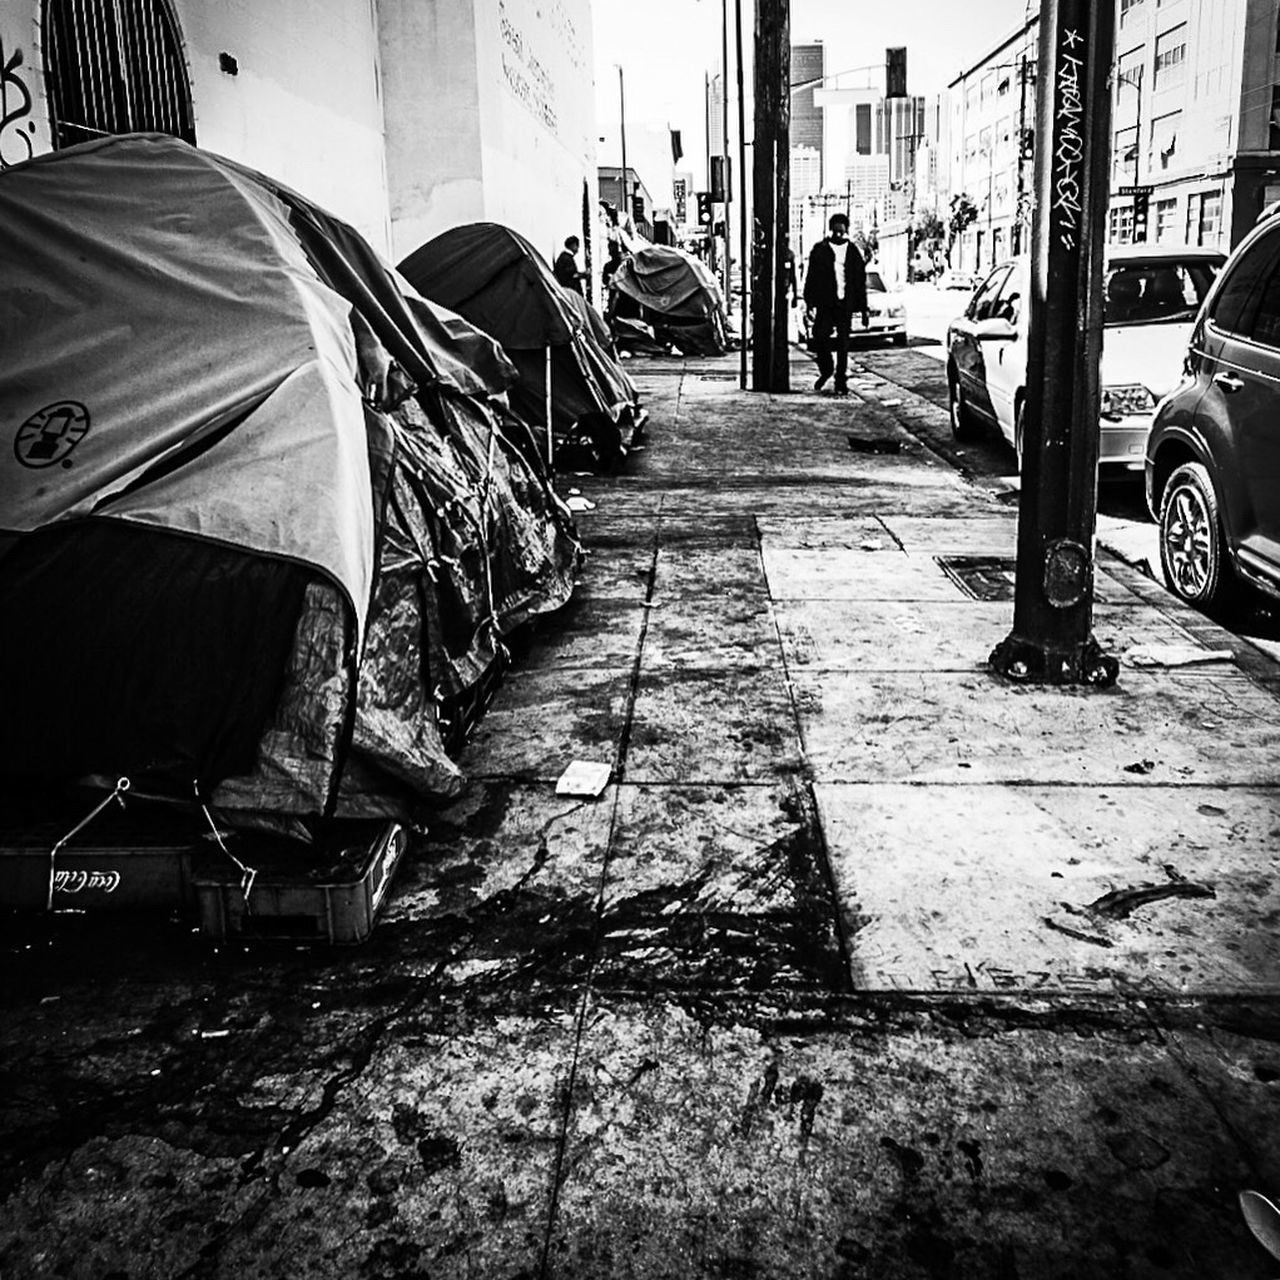 Built Structure Men Real People City Bnw Bnwphotography Bnw_collection Bnw_captures Bnw_society Blackandwhite EyeEm Gallery Sony A6000 Wanderer Go Explore Eyeemphotography SoCal California Dreaming These Streets Skid Row DTLA To Live And Die In LA Losangeles These Streets The Struggle Concrete Jungle